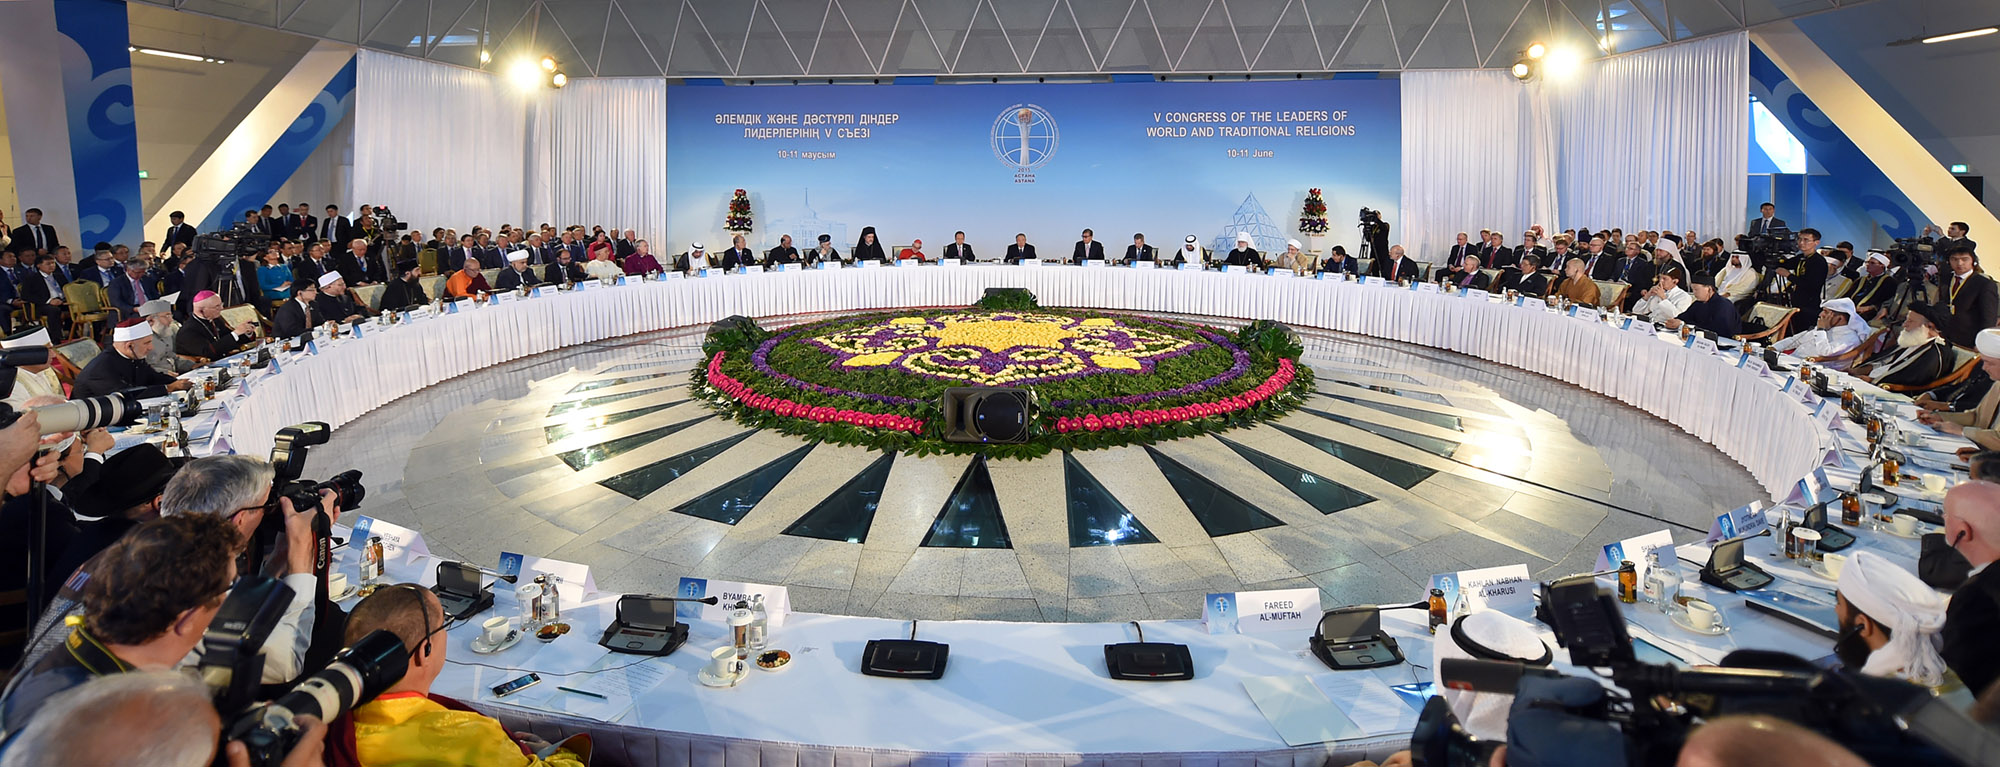 Congress Of Religious Leaders Launches In Astana Kazakh